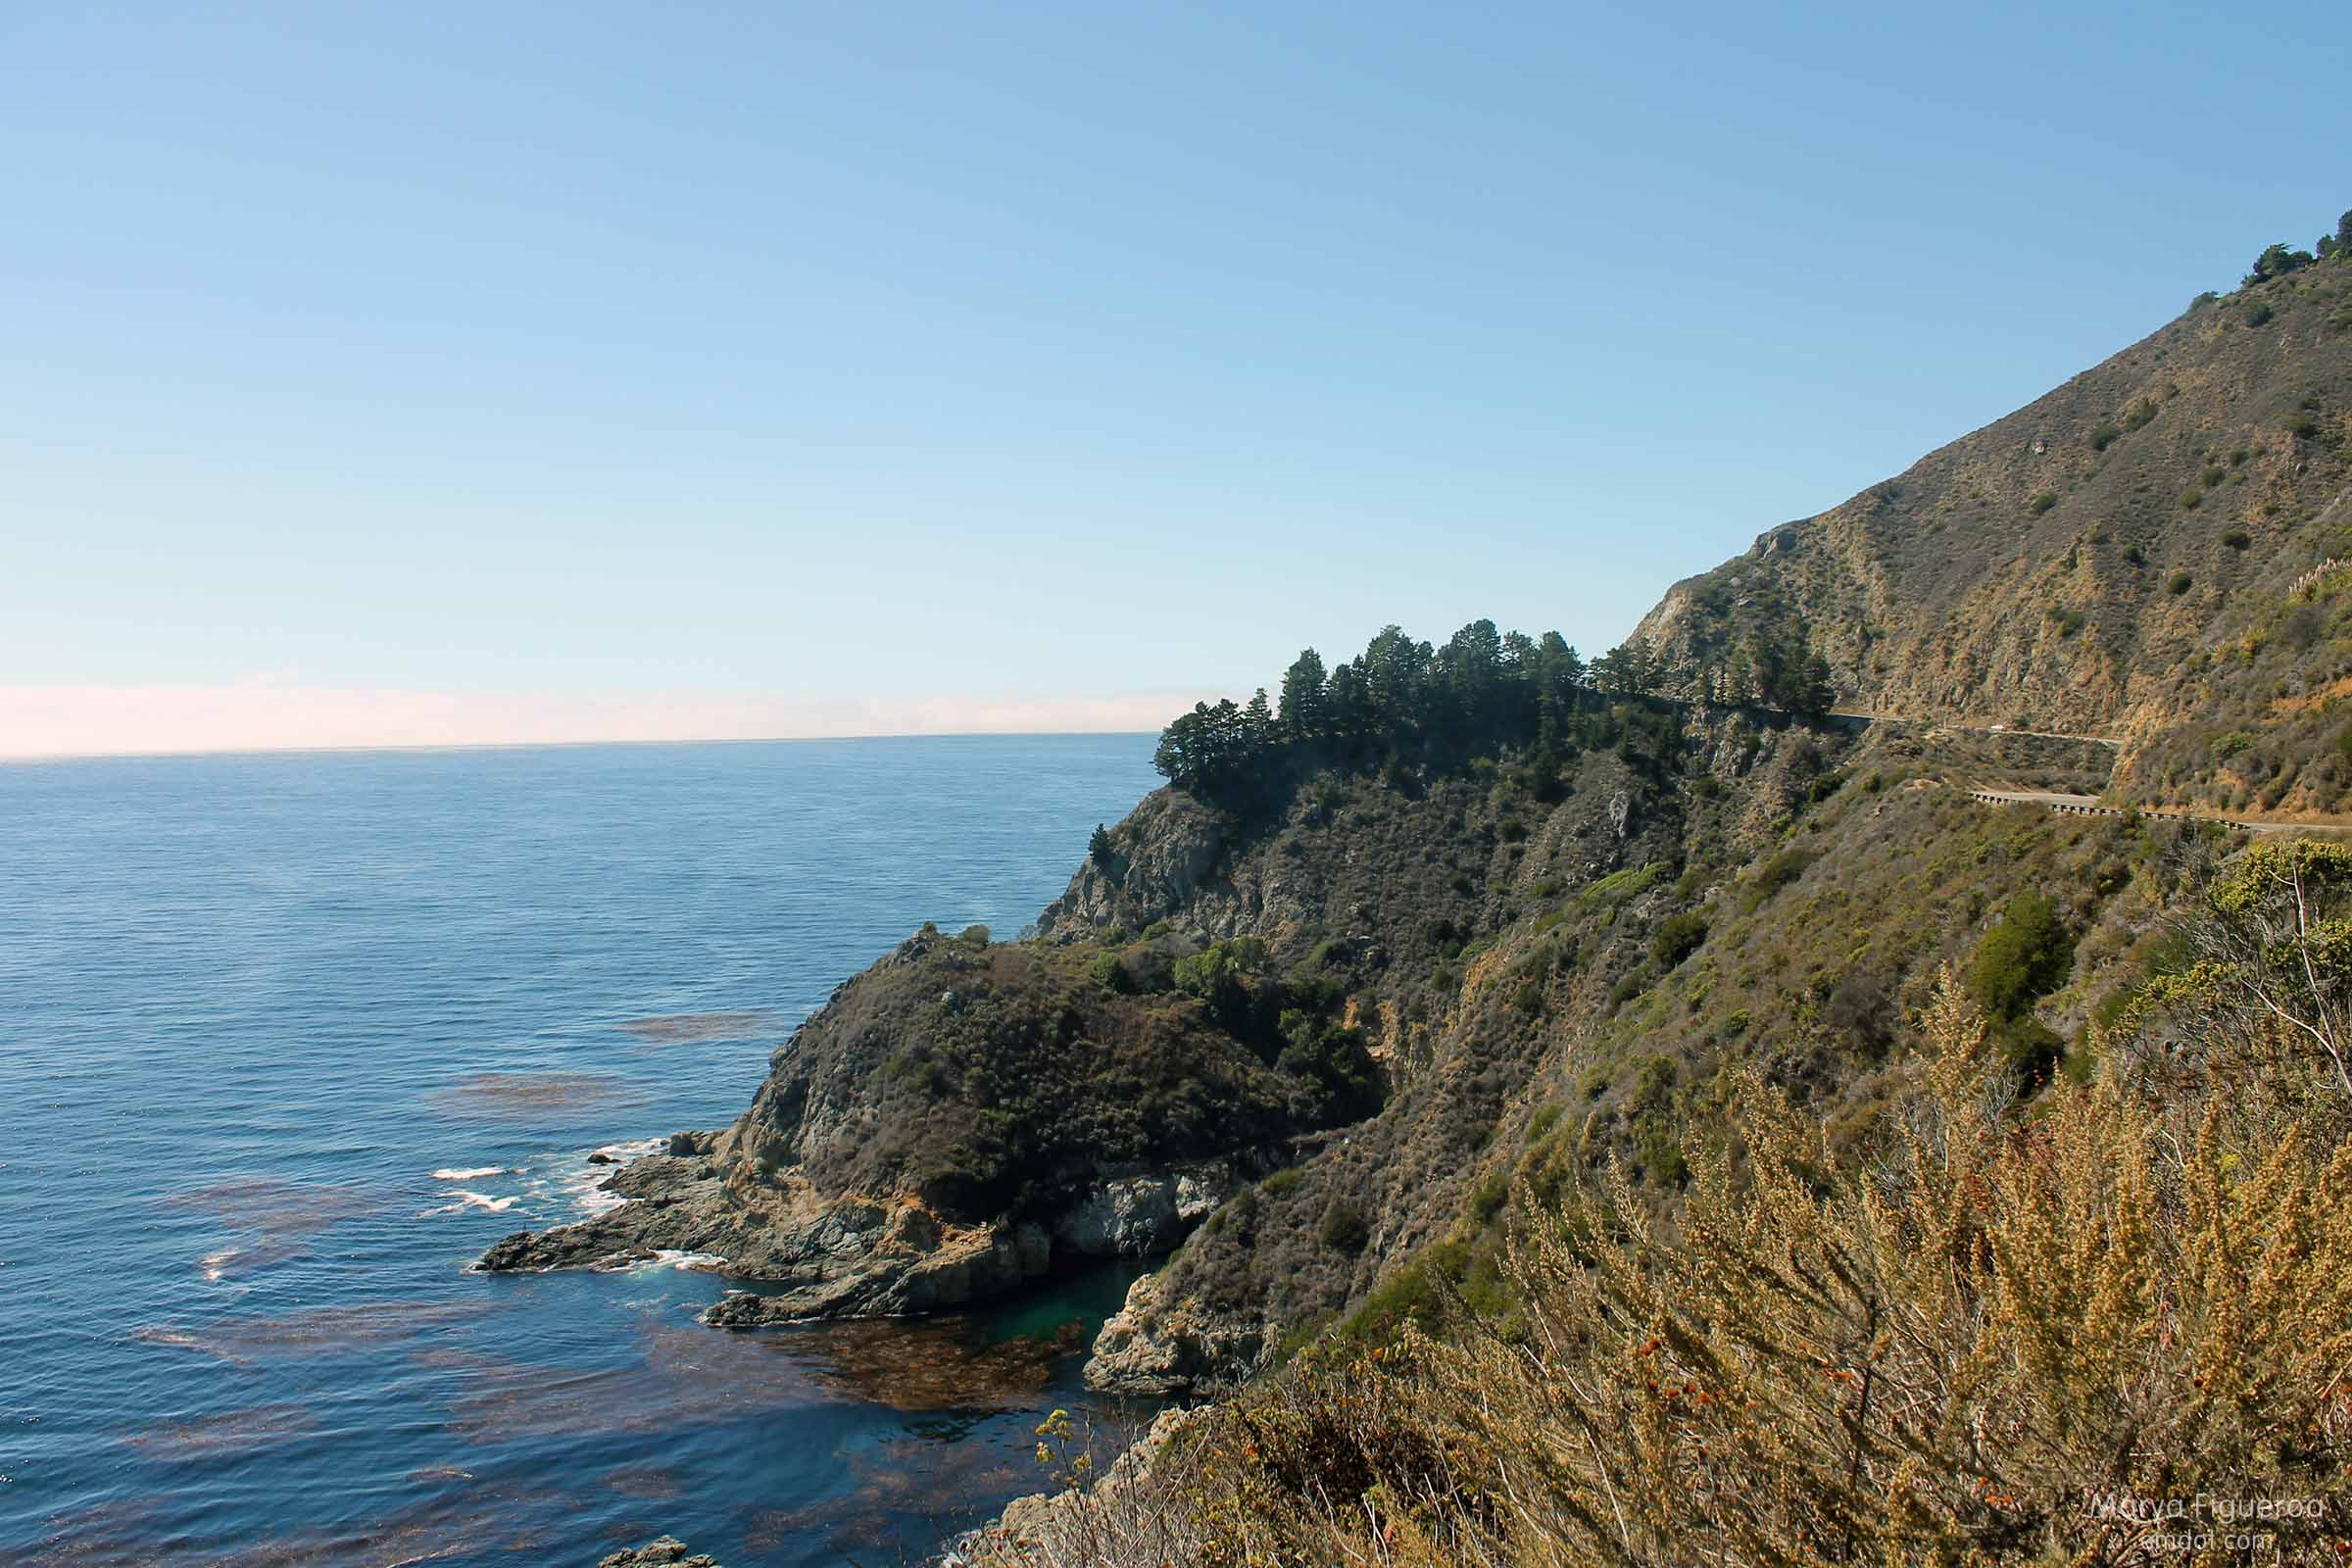 On Highway 1, walking back to our car